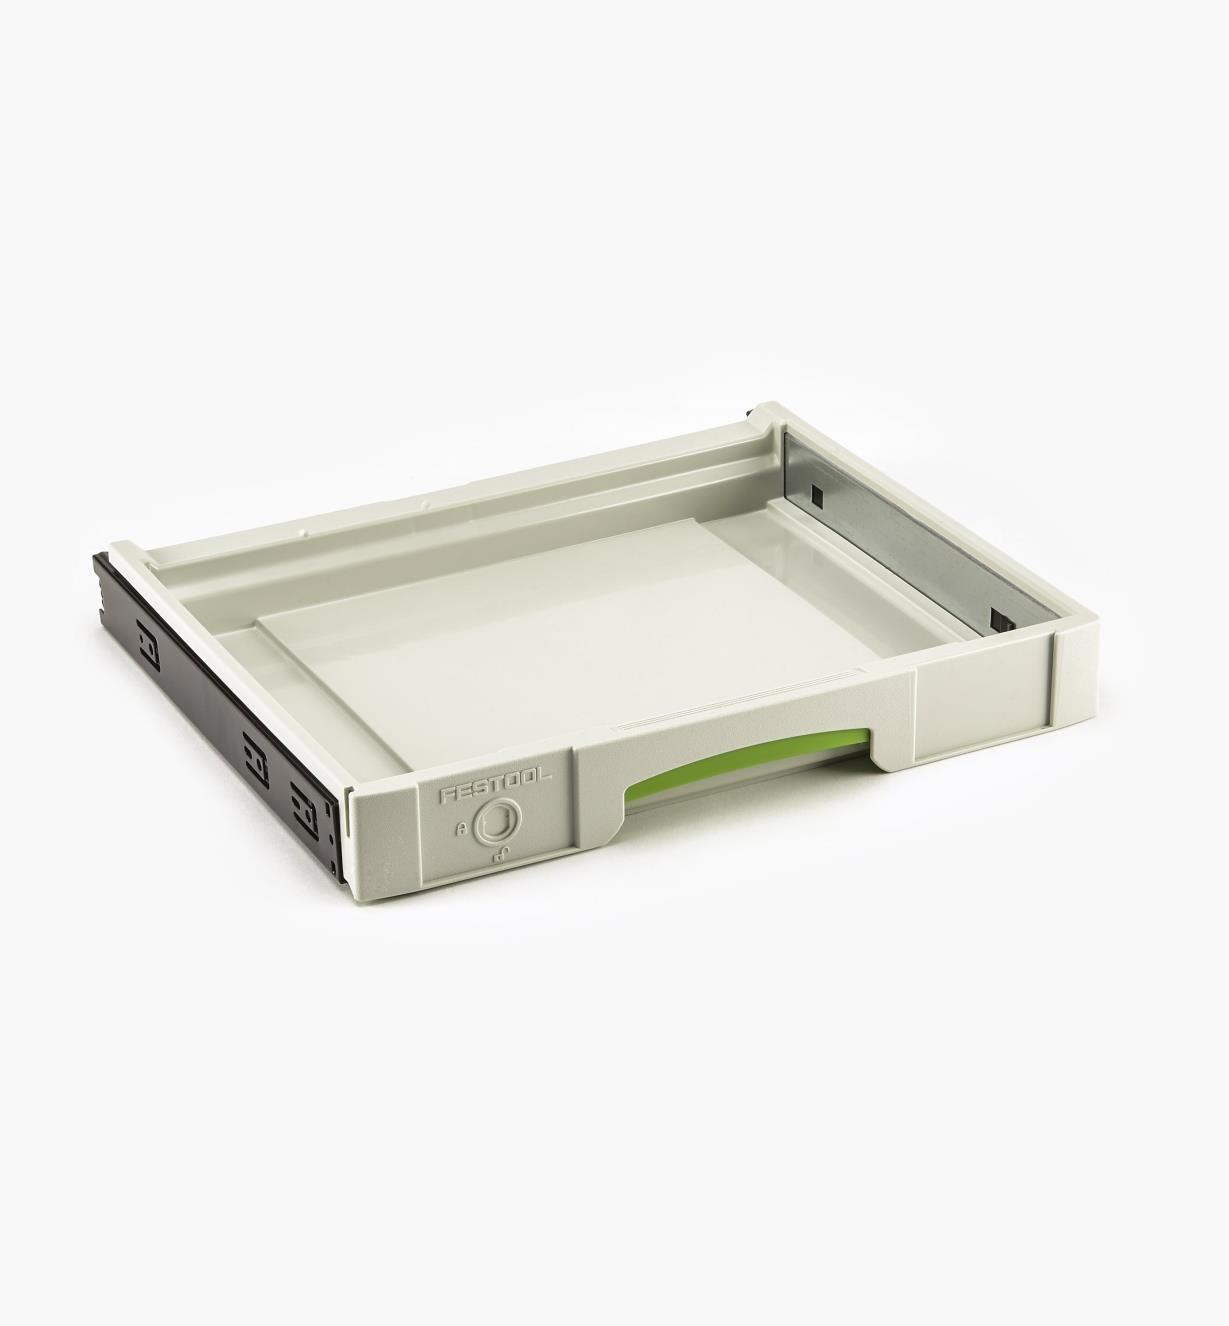 ZA500692 - Sys-AZ Drawer 1 pack